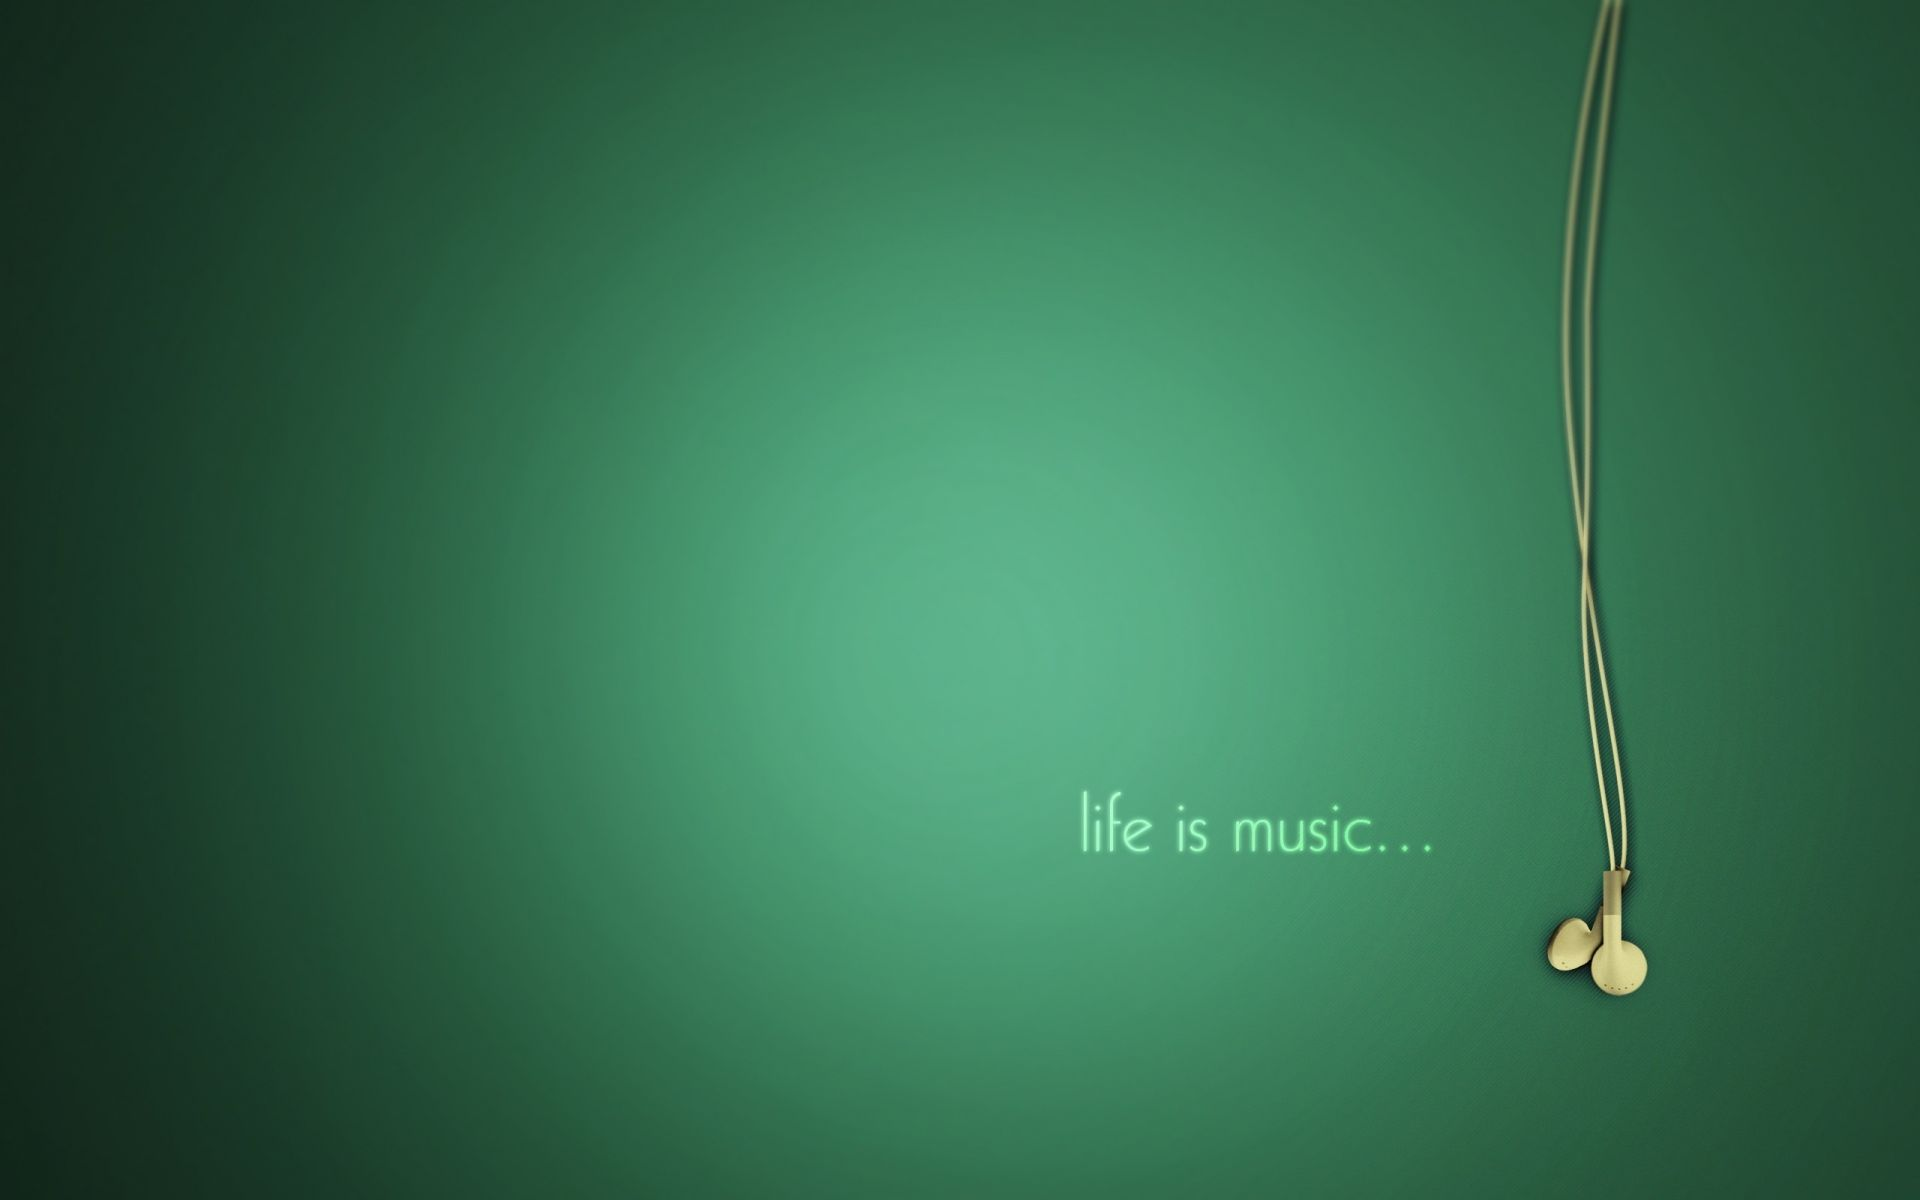 The music is beautifully green headphones minimalism